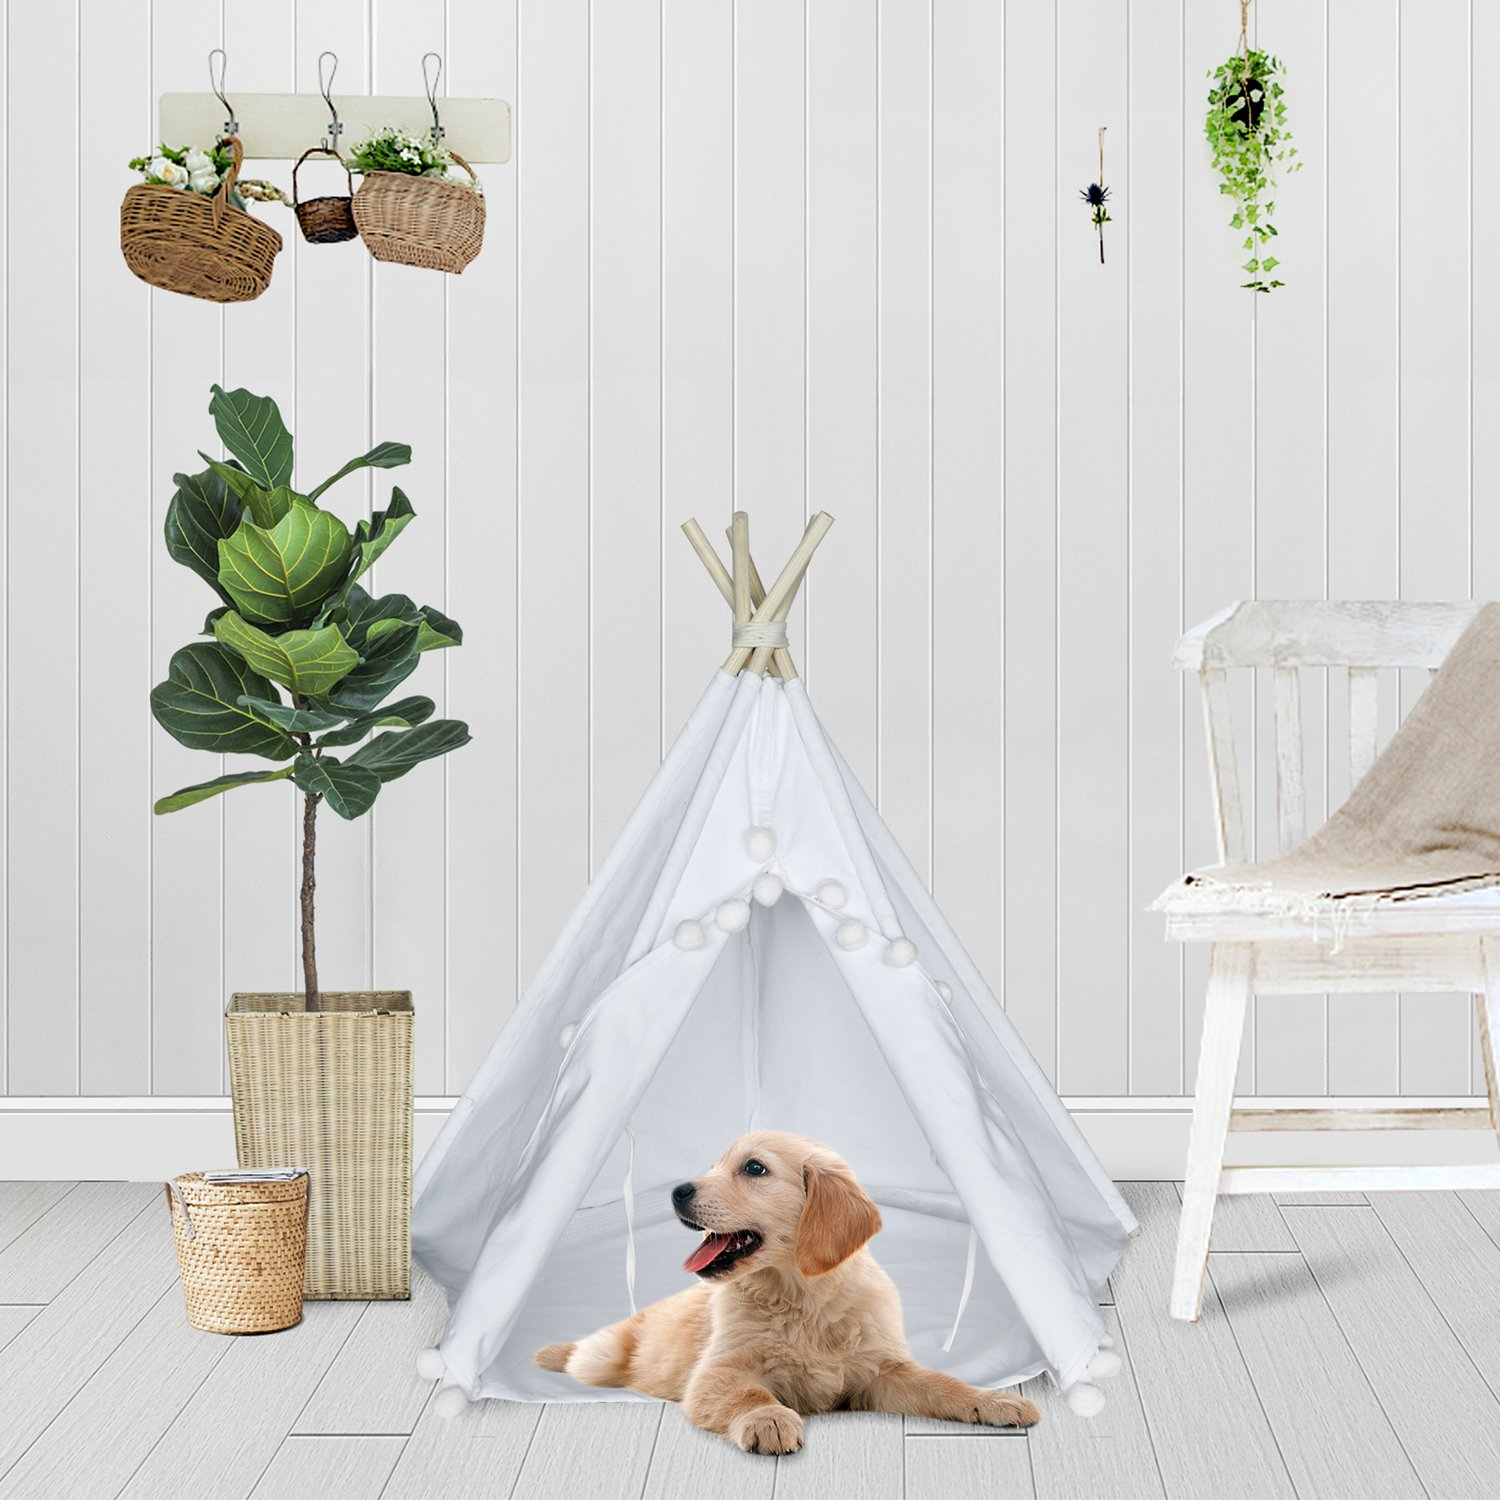 Amazon.com : UKadou Pet Teepee Tent for Dogs Cats Foldable Portable ...